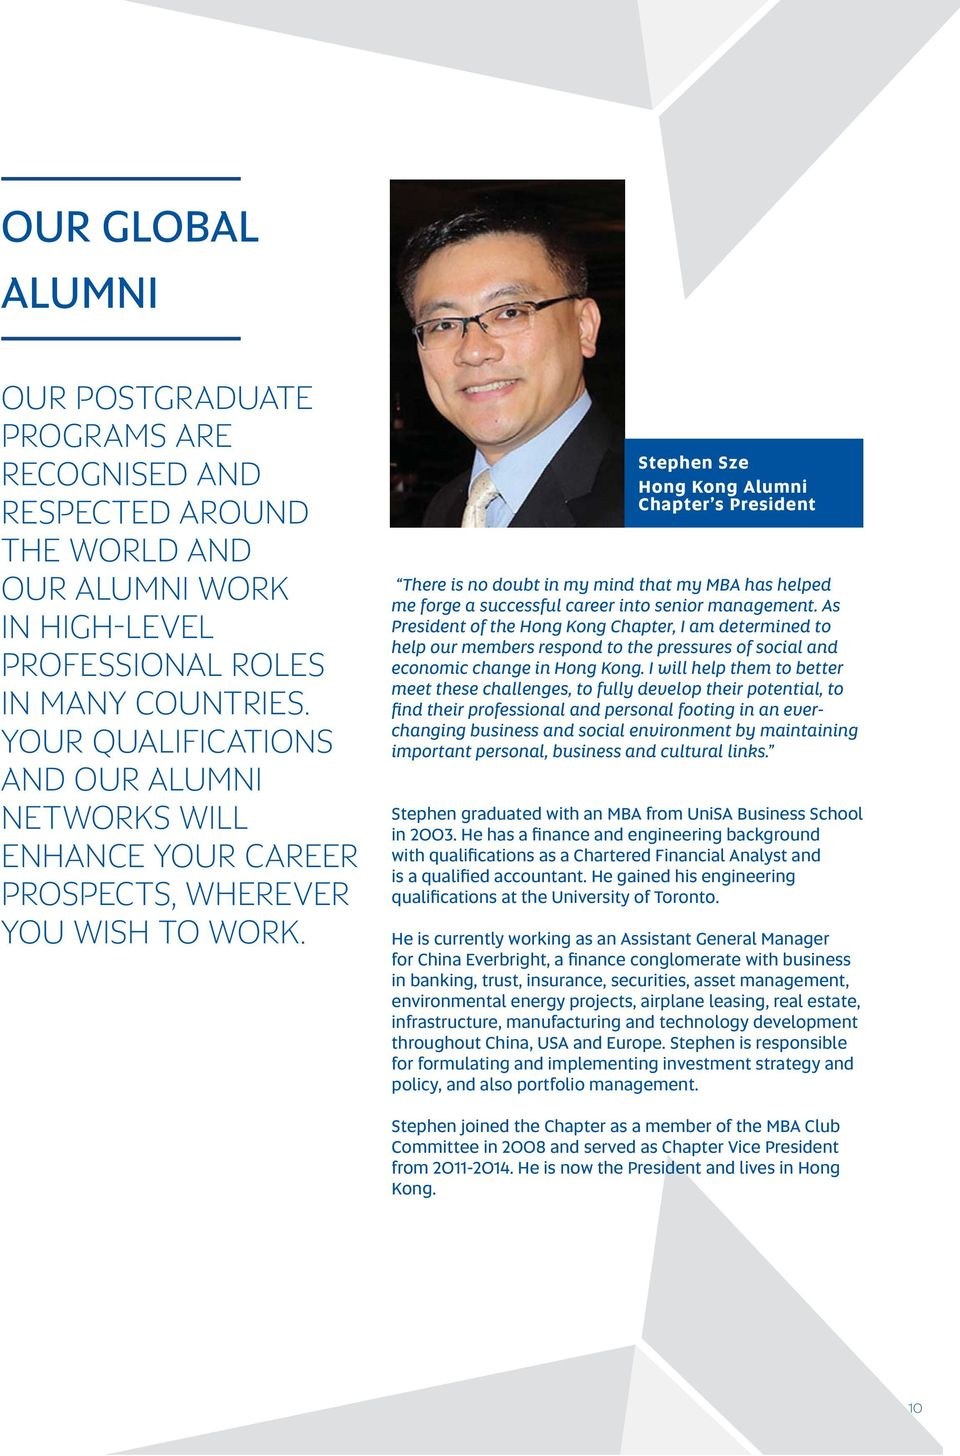 Stephen Sze Hong Kong Alumni Chapter s President There is no doubt in my mind that my MBA has helped me forge a successful career into senior management.